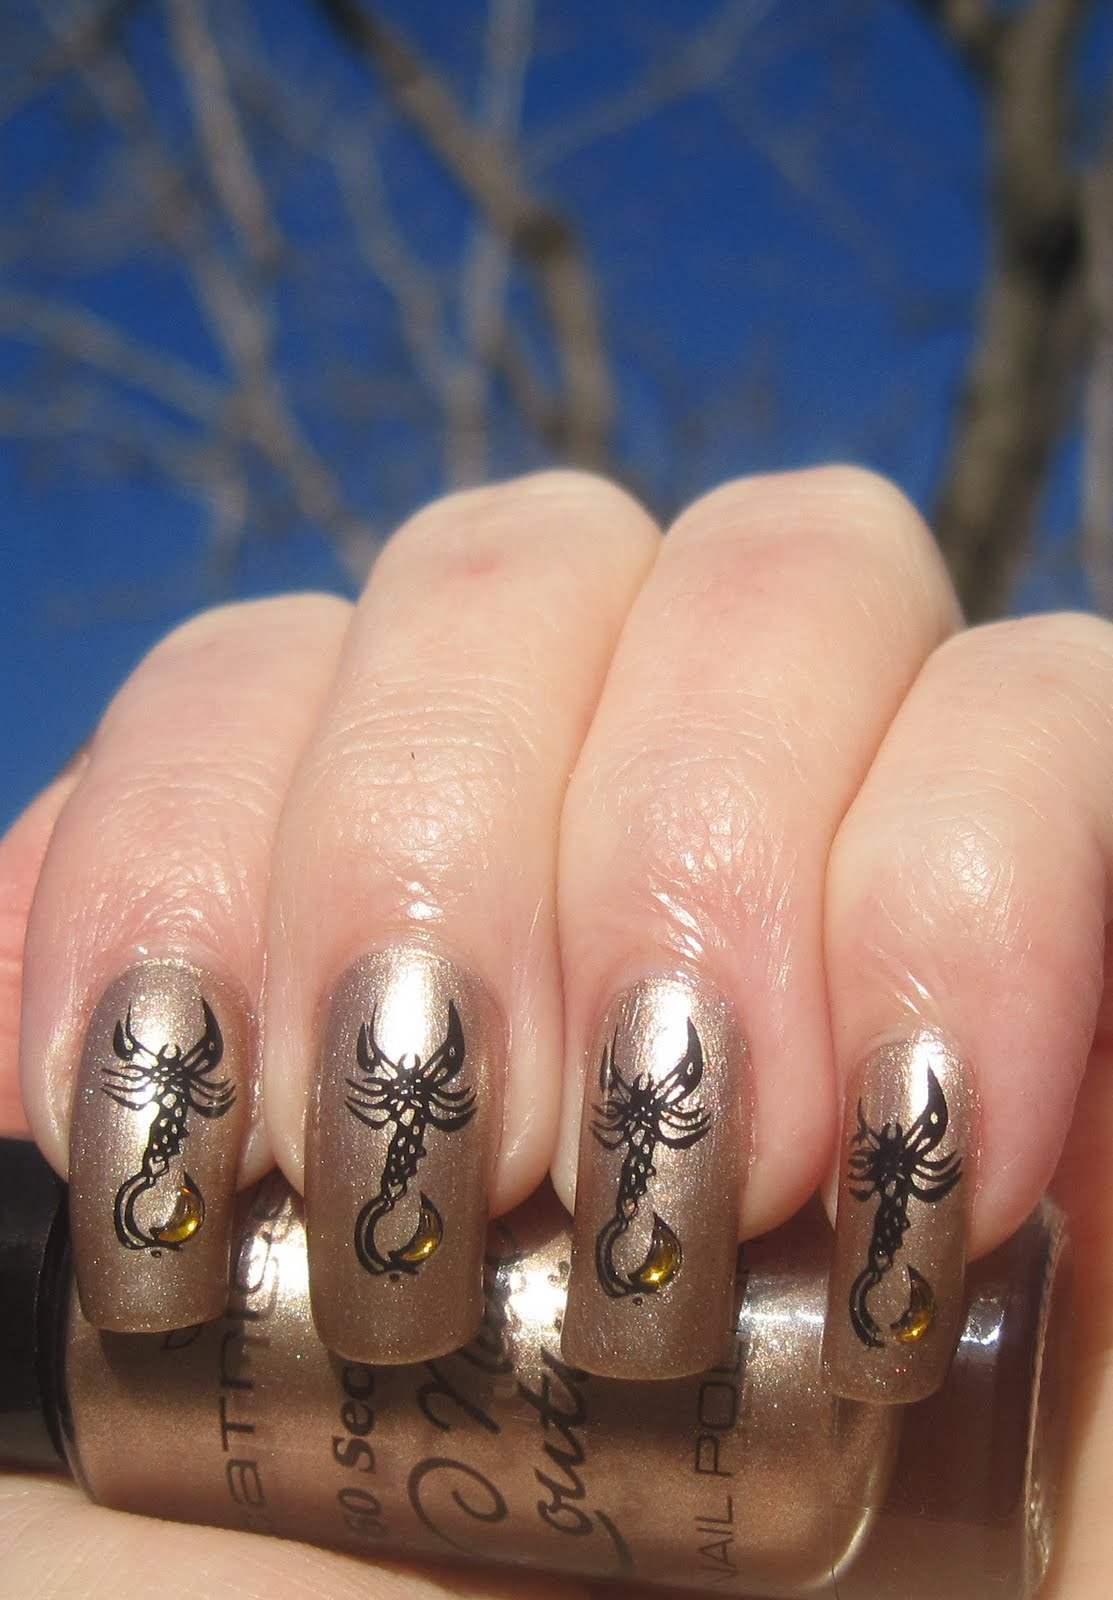 Painted Lady Fingers: Moon in Scorpio: Catrice Sophisticated